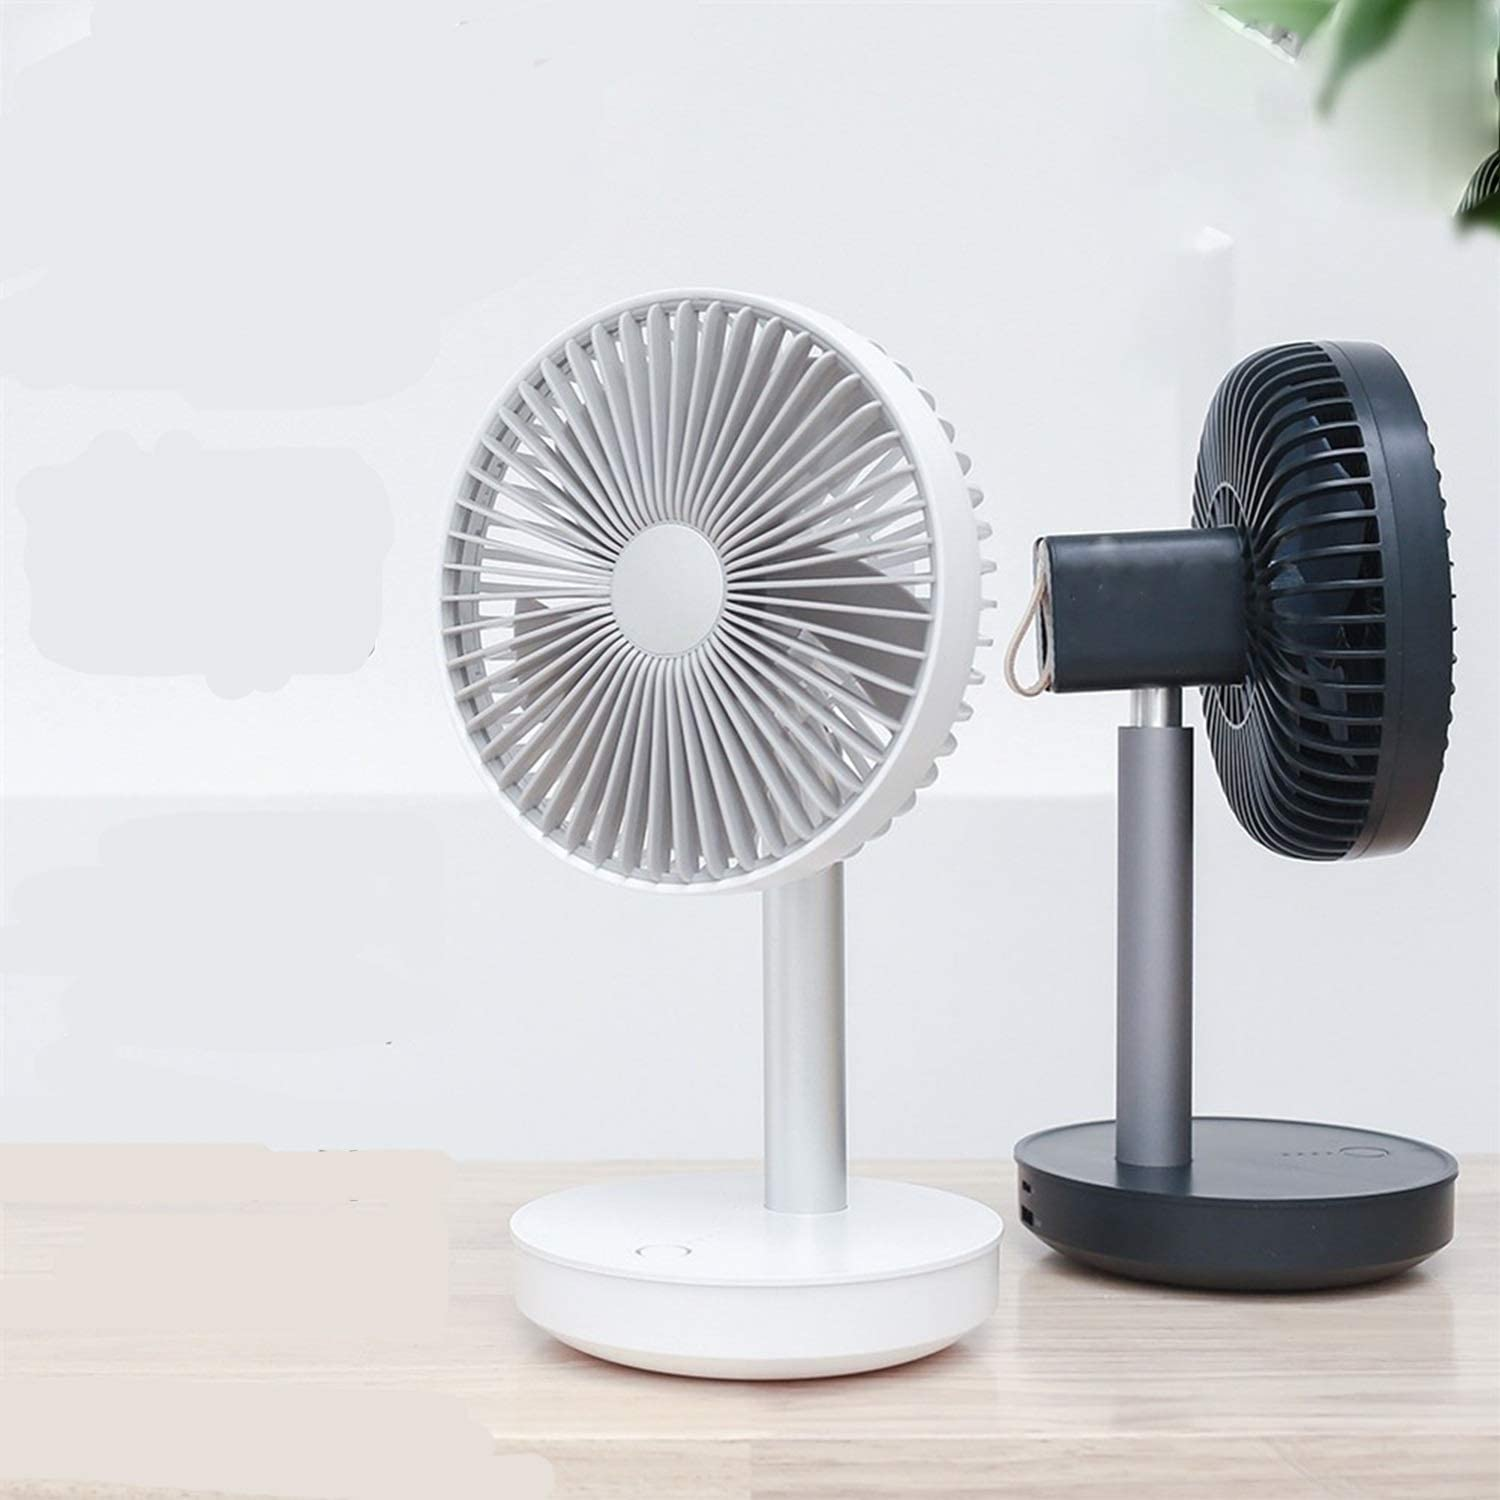 Color : Black Happy Roam Convenient Convenient Fashion Table Fan 120 Degrees Shaking Head Rotatable Apartment Desktop Electric Fan Ultra-Quiet Motor USB Charging Fashion